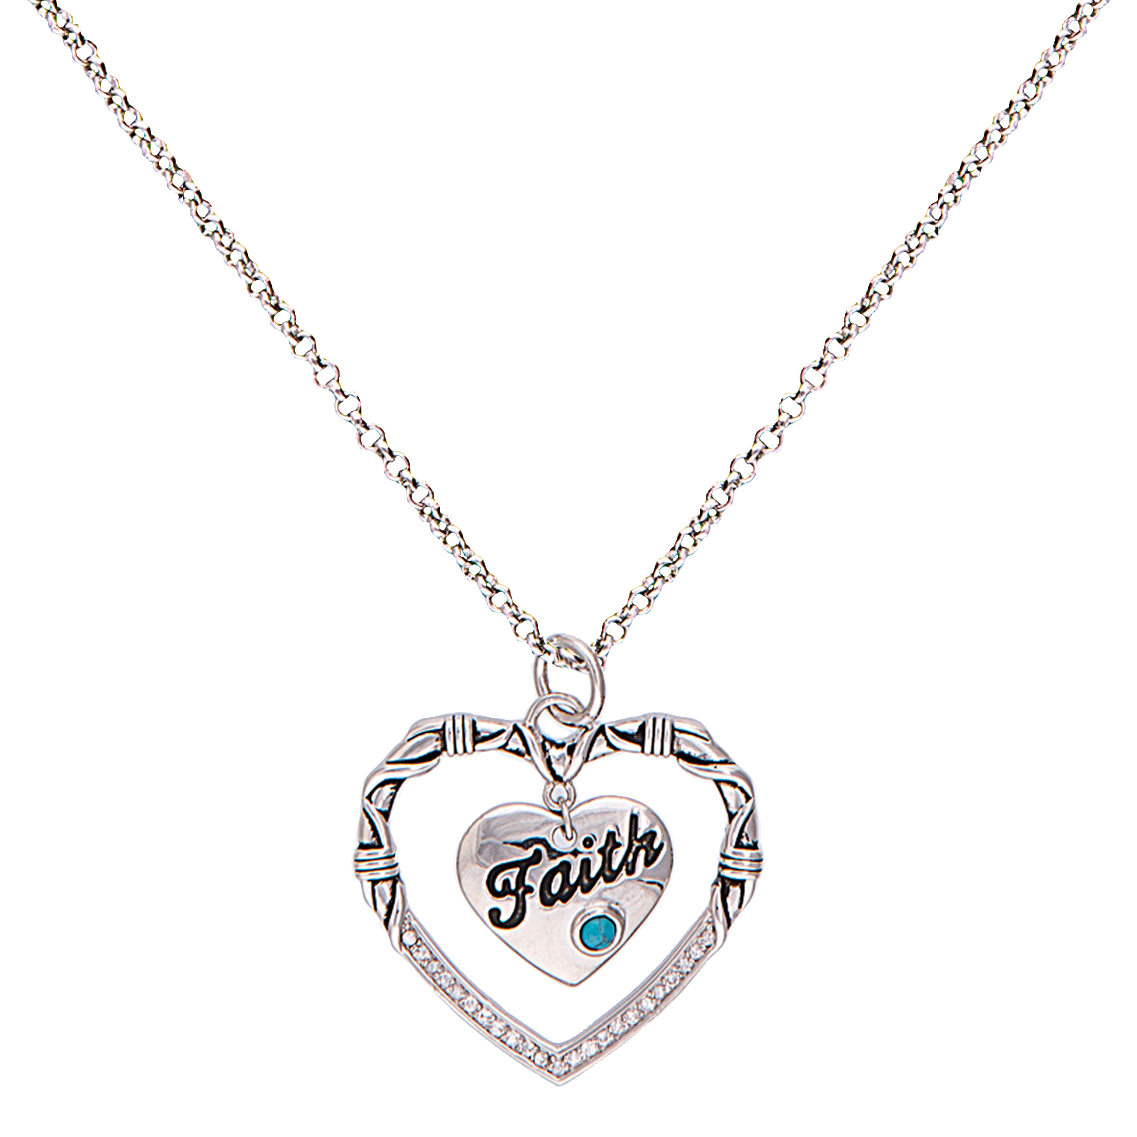 Montana Silversmiths A Cowgirl's Heart Of Faith Necklace